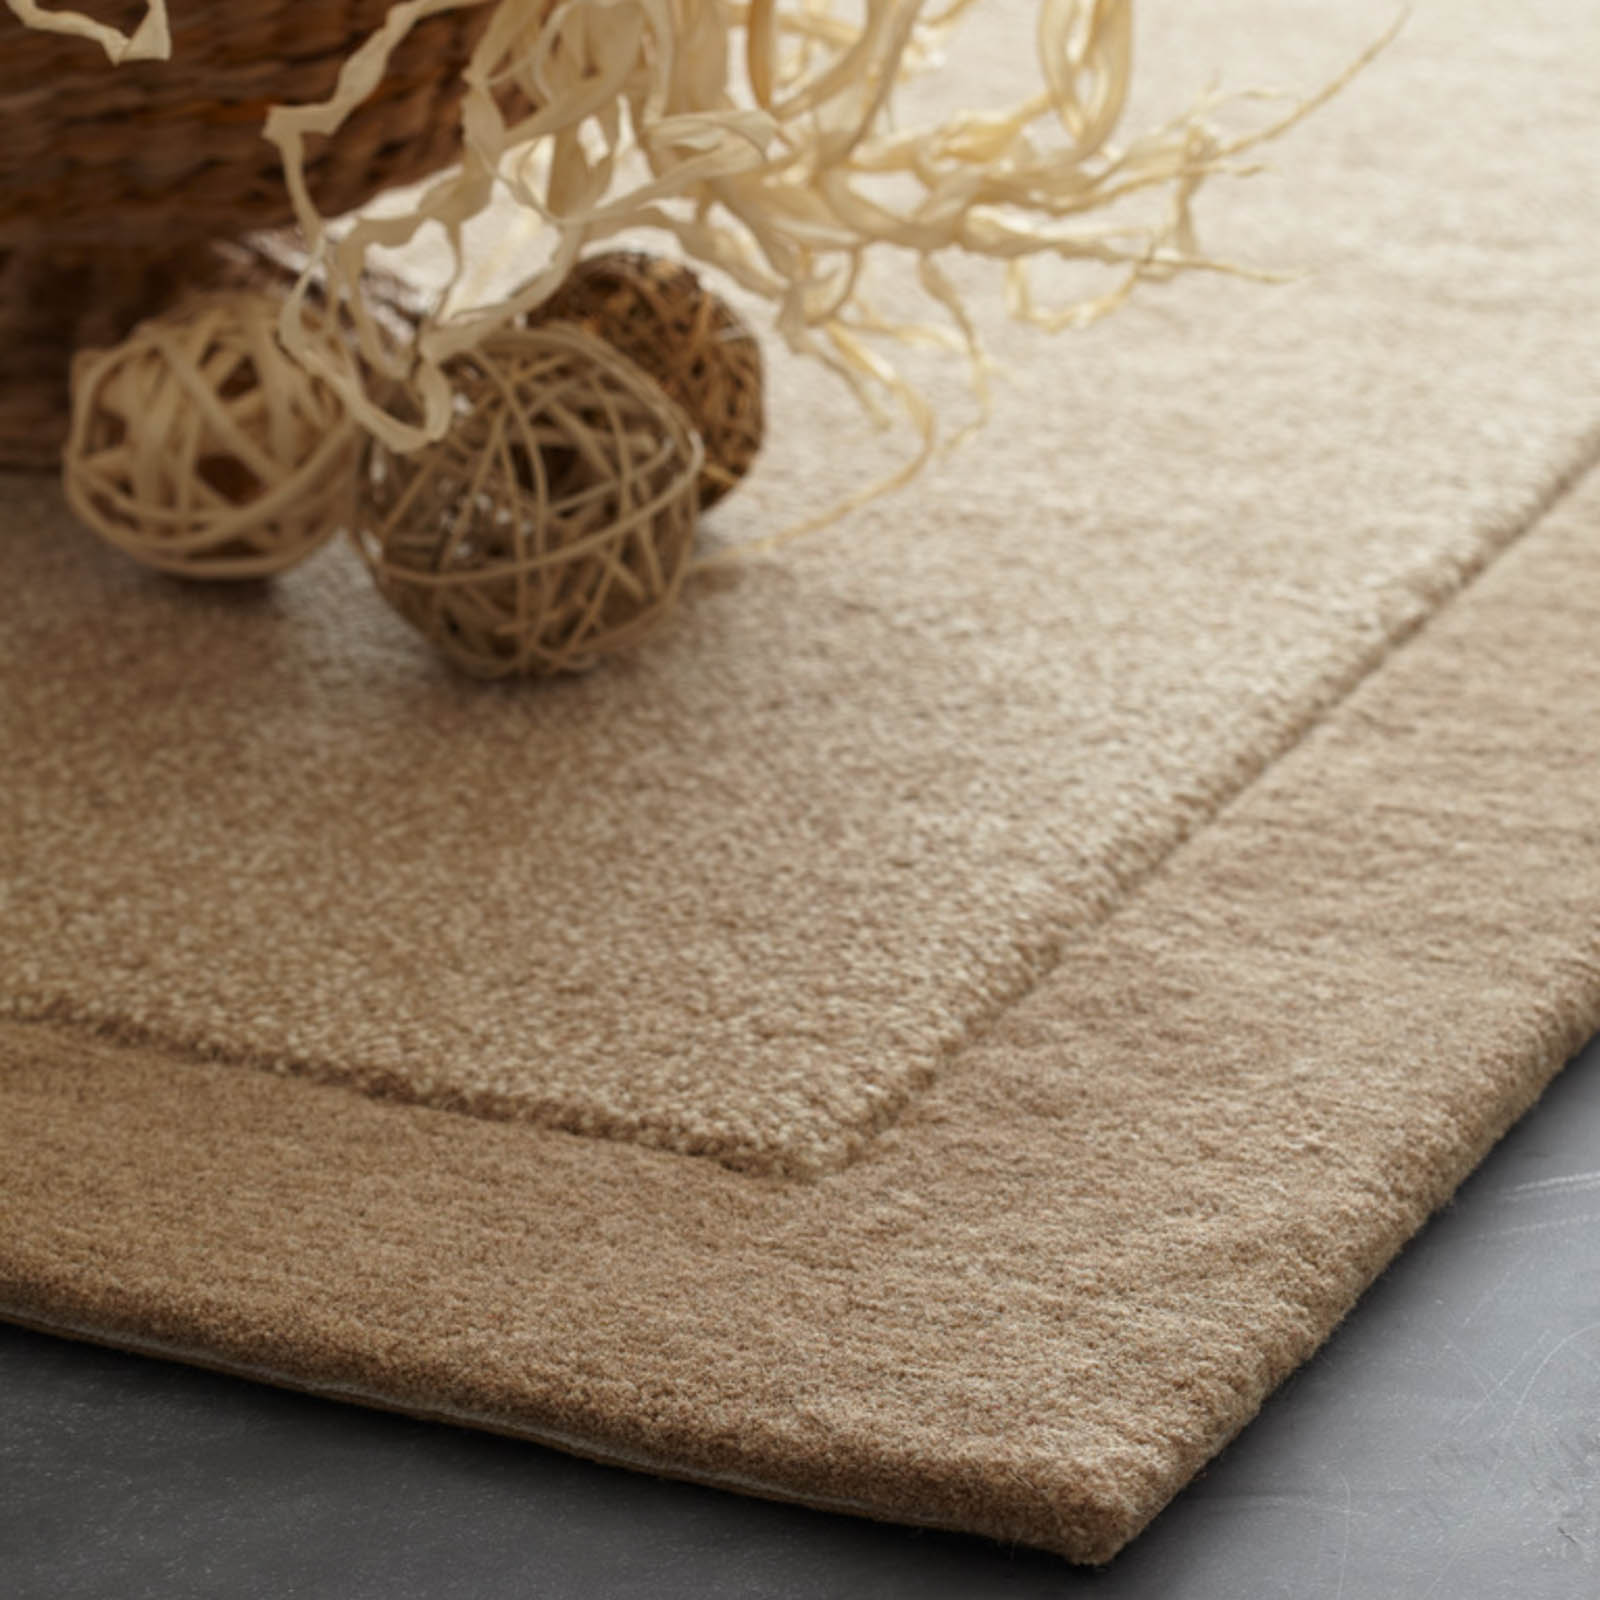 Steppes Border Rugs in Beige